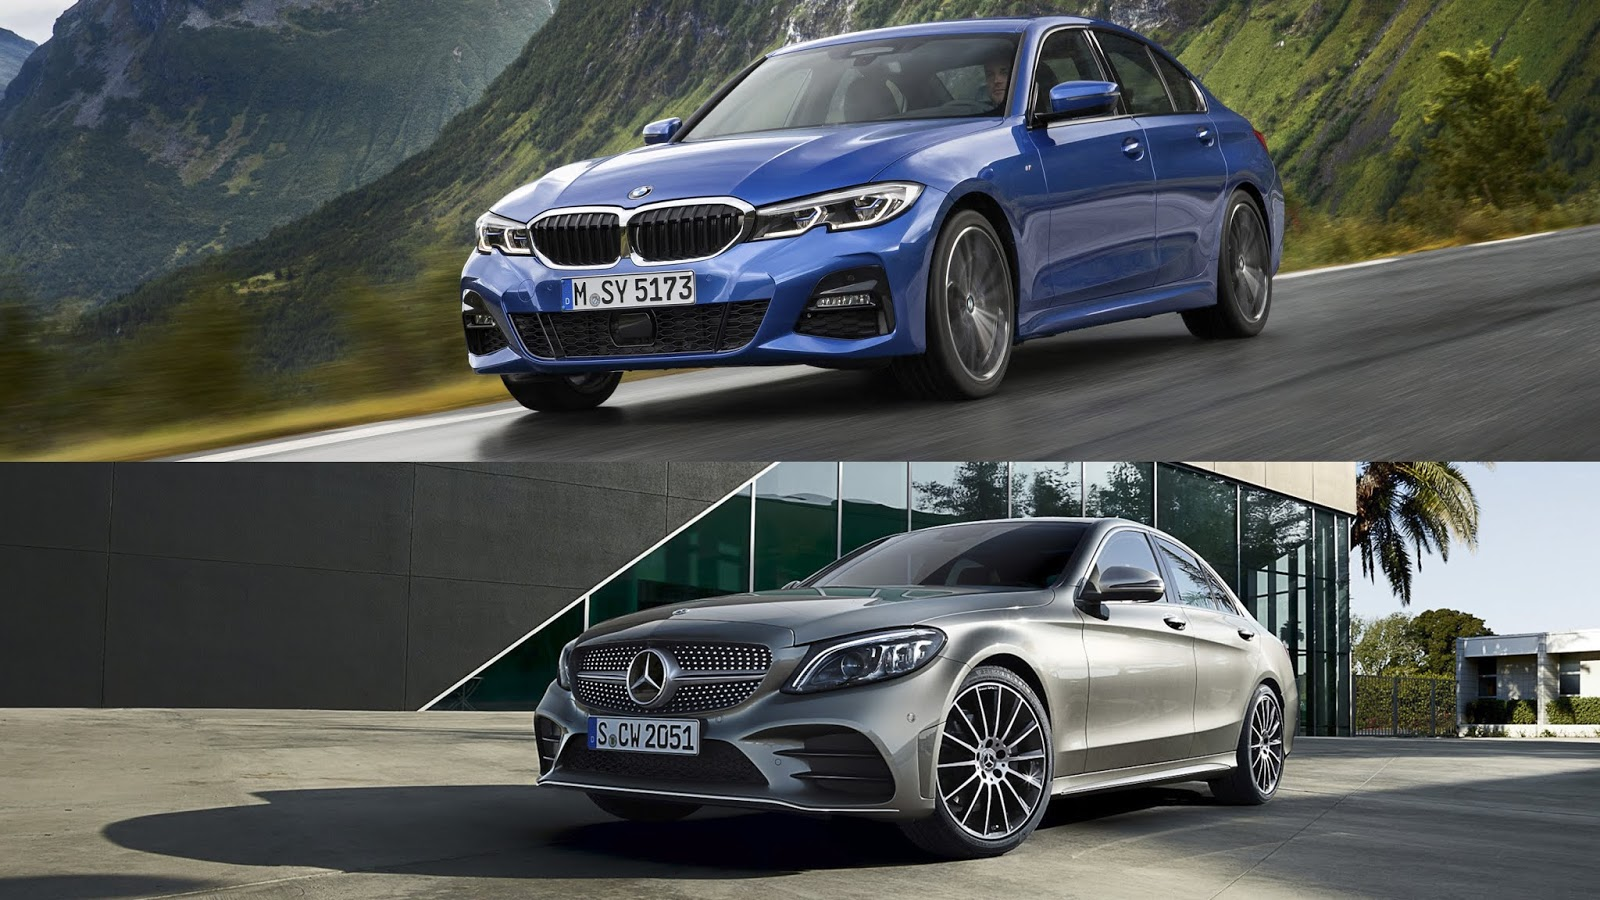 2019 Bmw 3 Series Vs 2019 Mercedes C Class Page Of Pro